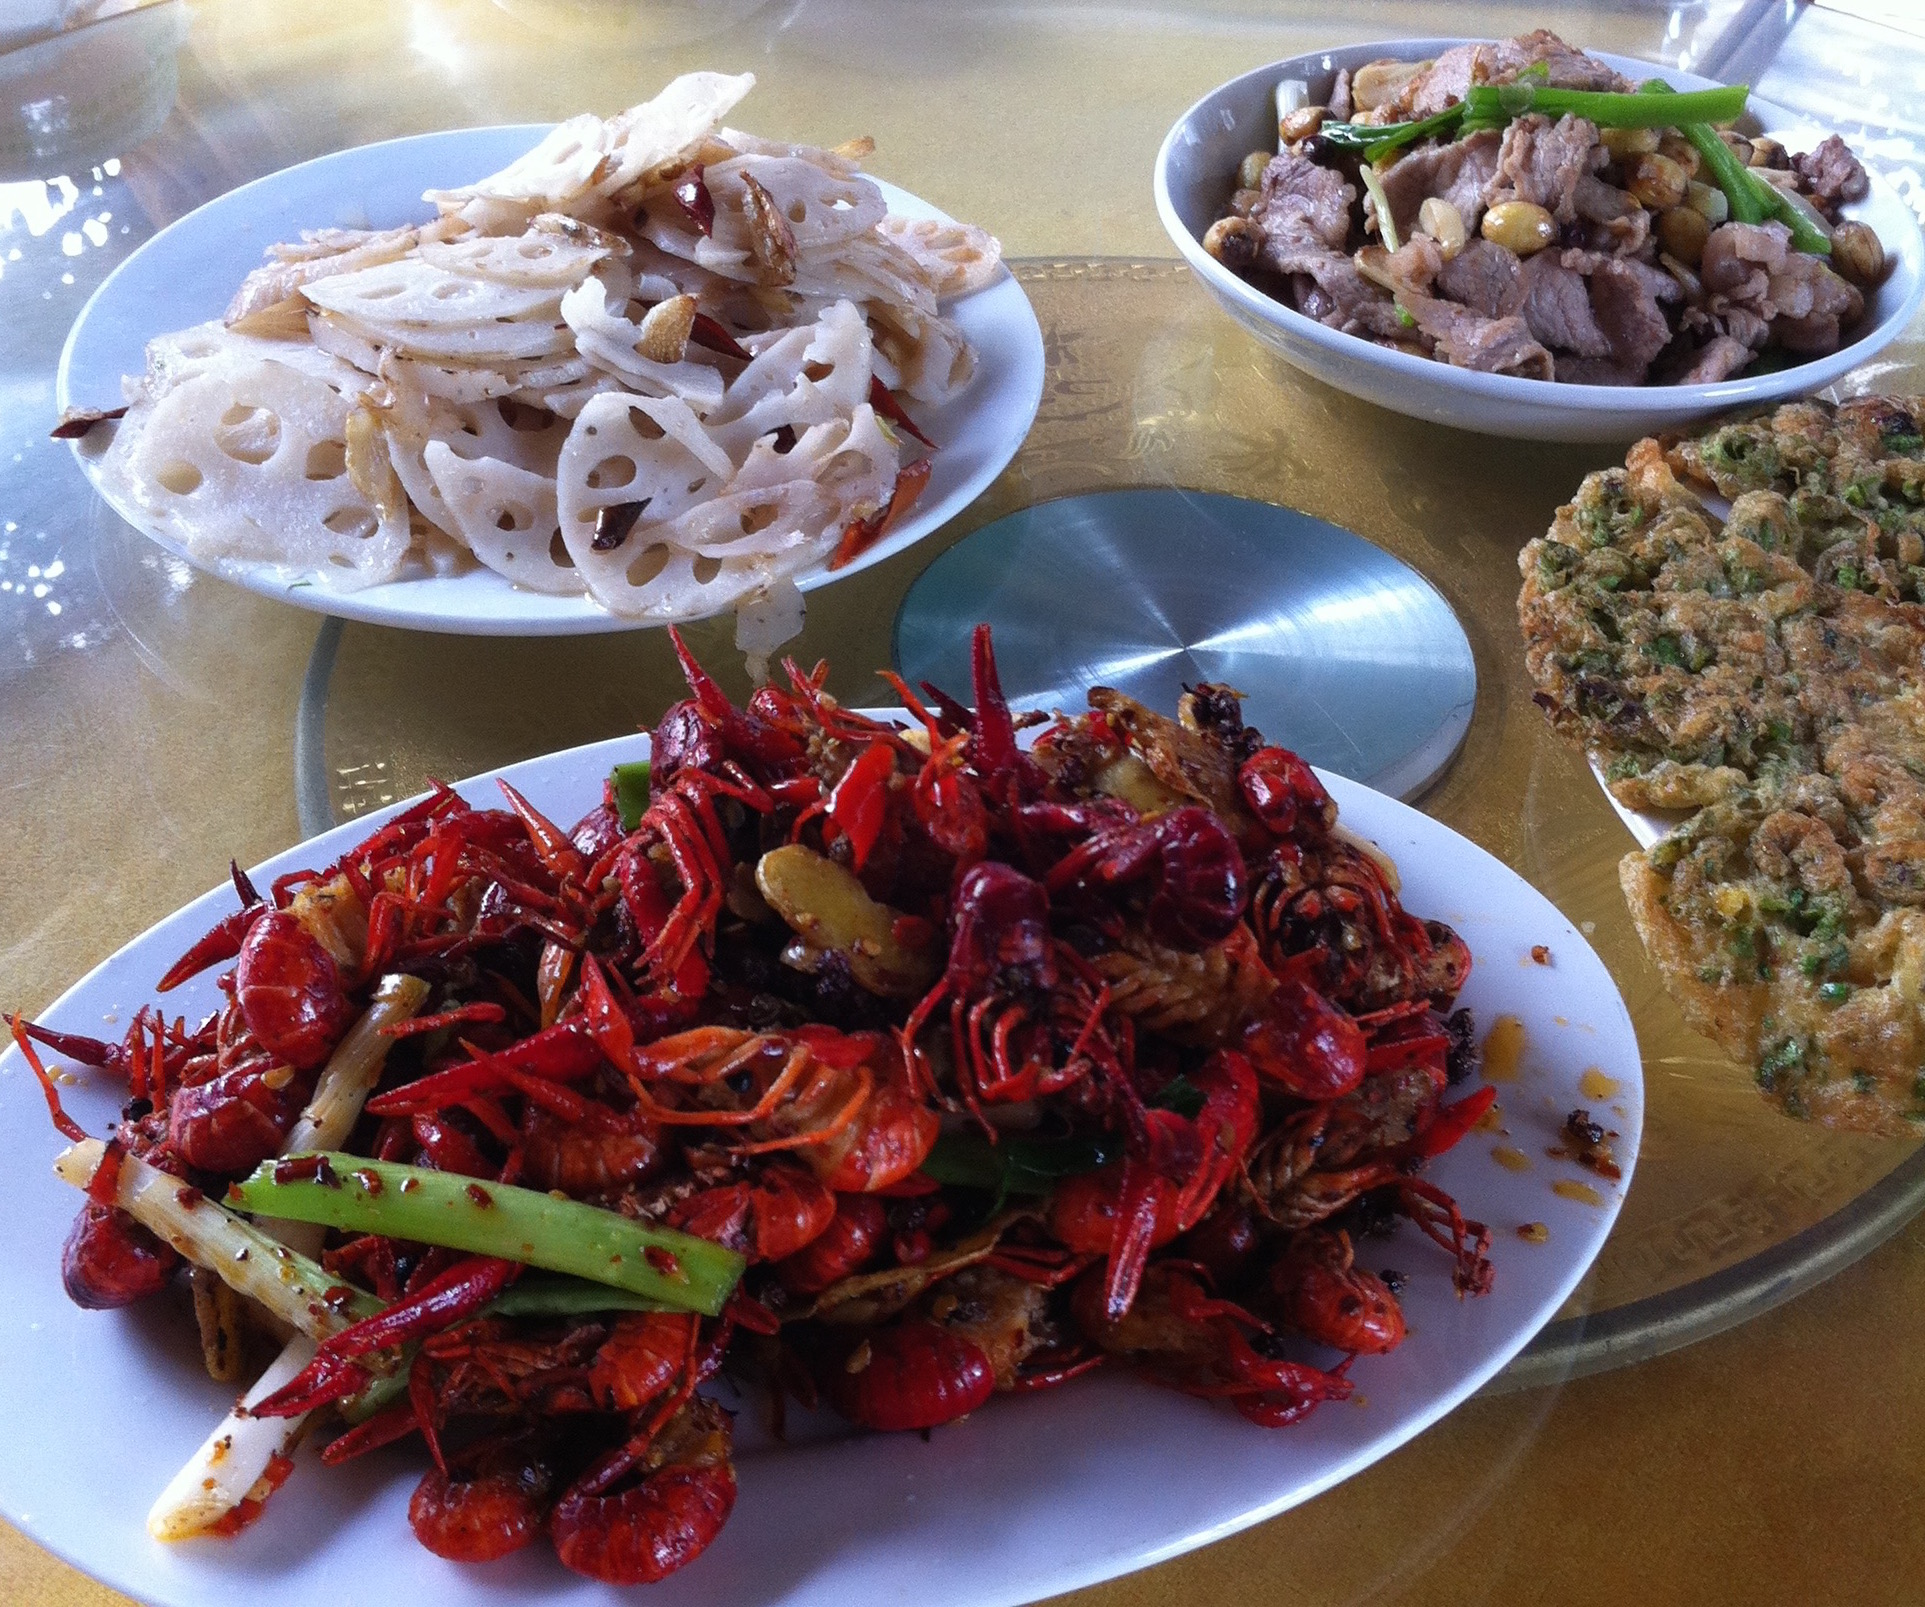 Lunch pulled from the lake: crawfish, lotus root, pork with lotus seeds, and eggs with lotus leaf.